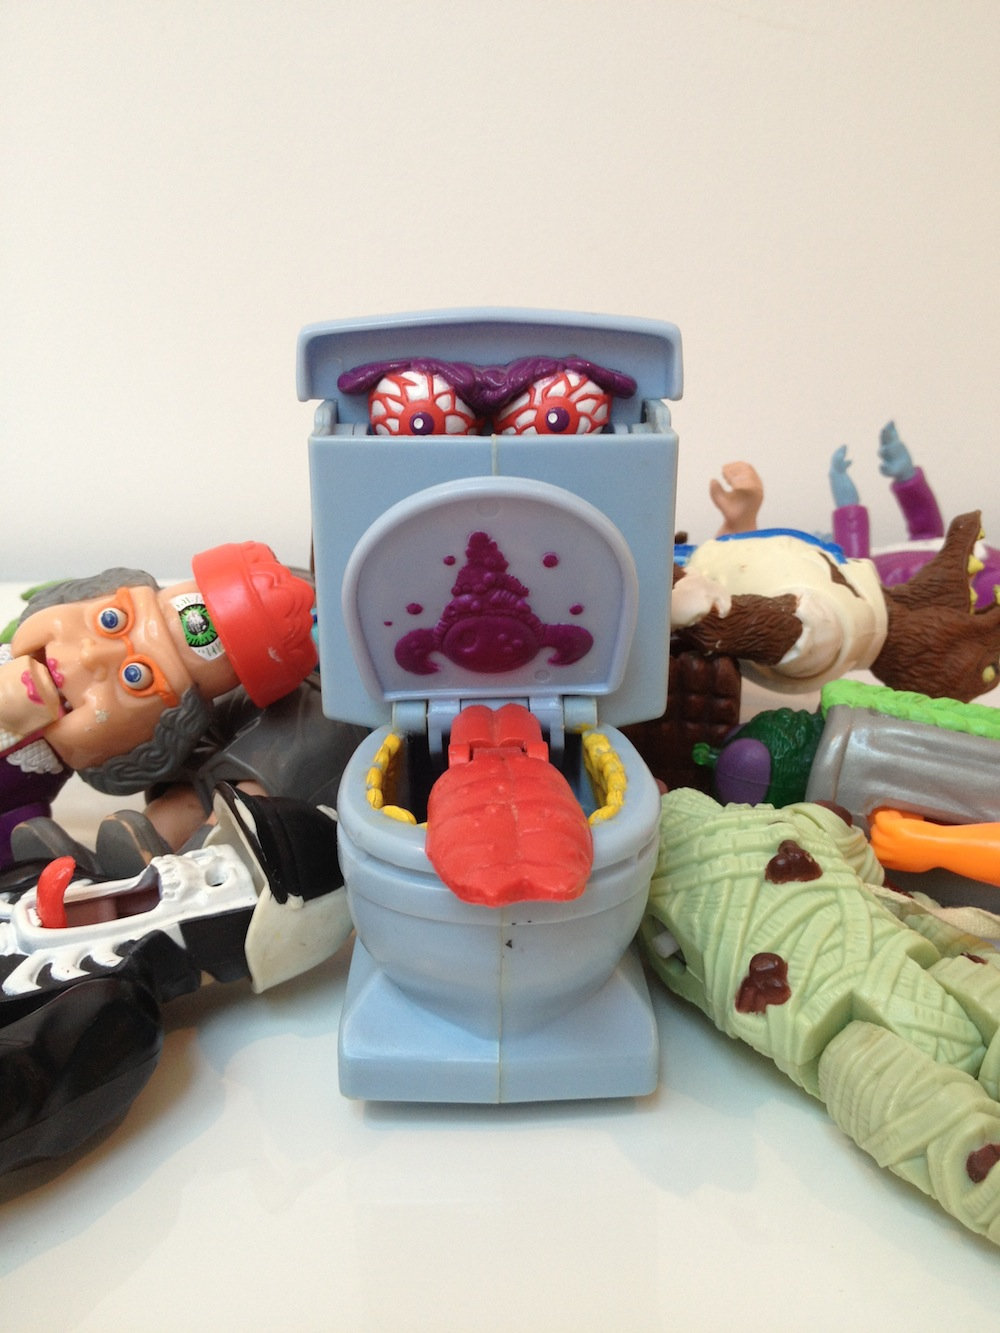 Vintage Toy Potty : Play vintage ghostbusters toys uberkid